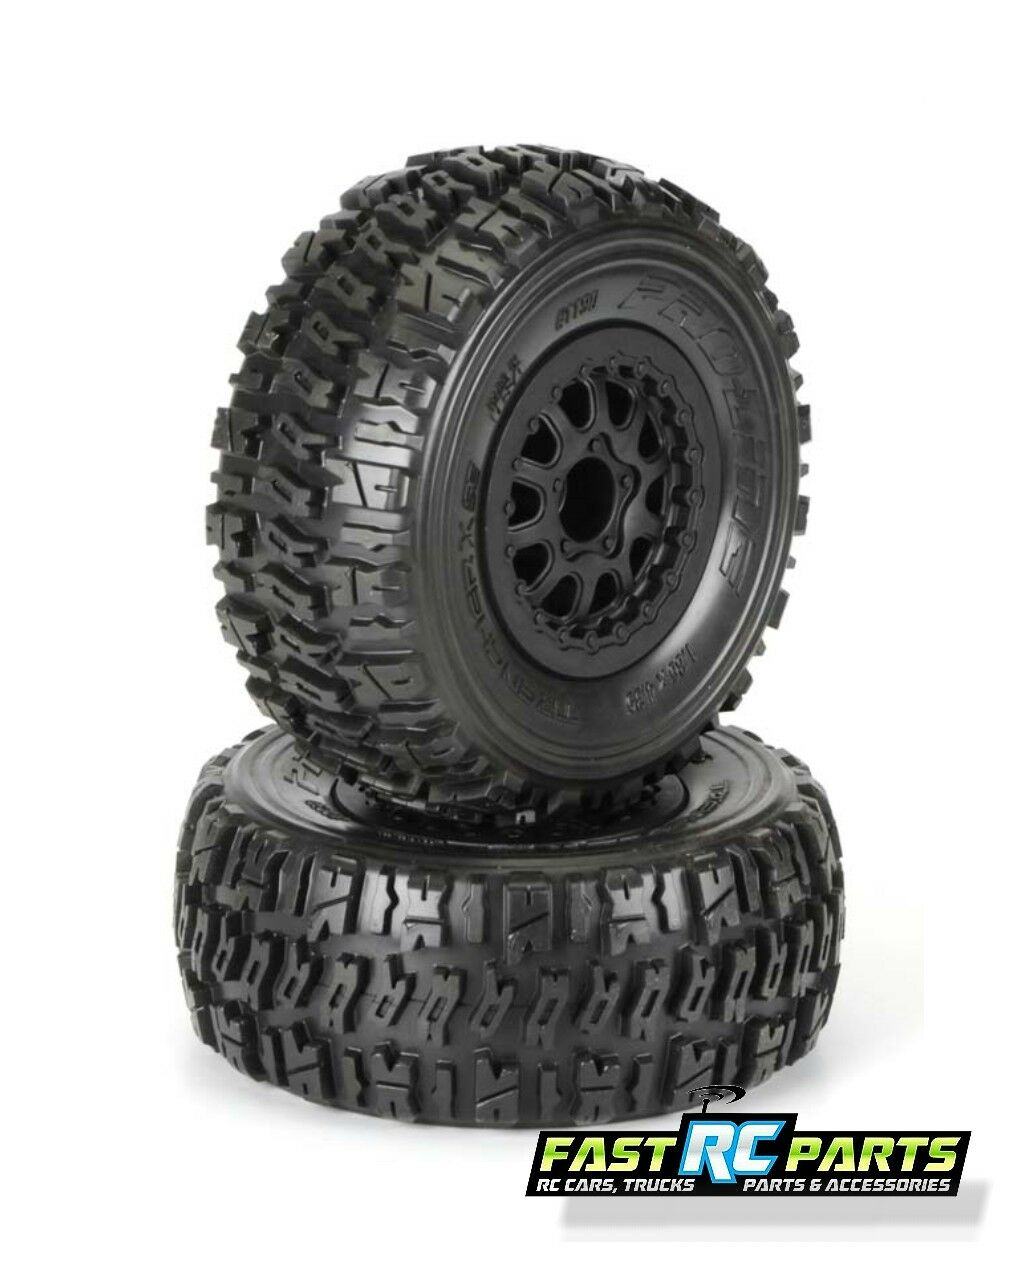 Trencher X X X Sc 2.2 3.0 M2 Tires Mounted Renegade PRO1190-13 72f167